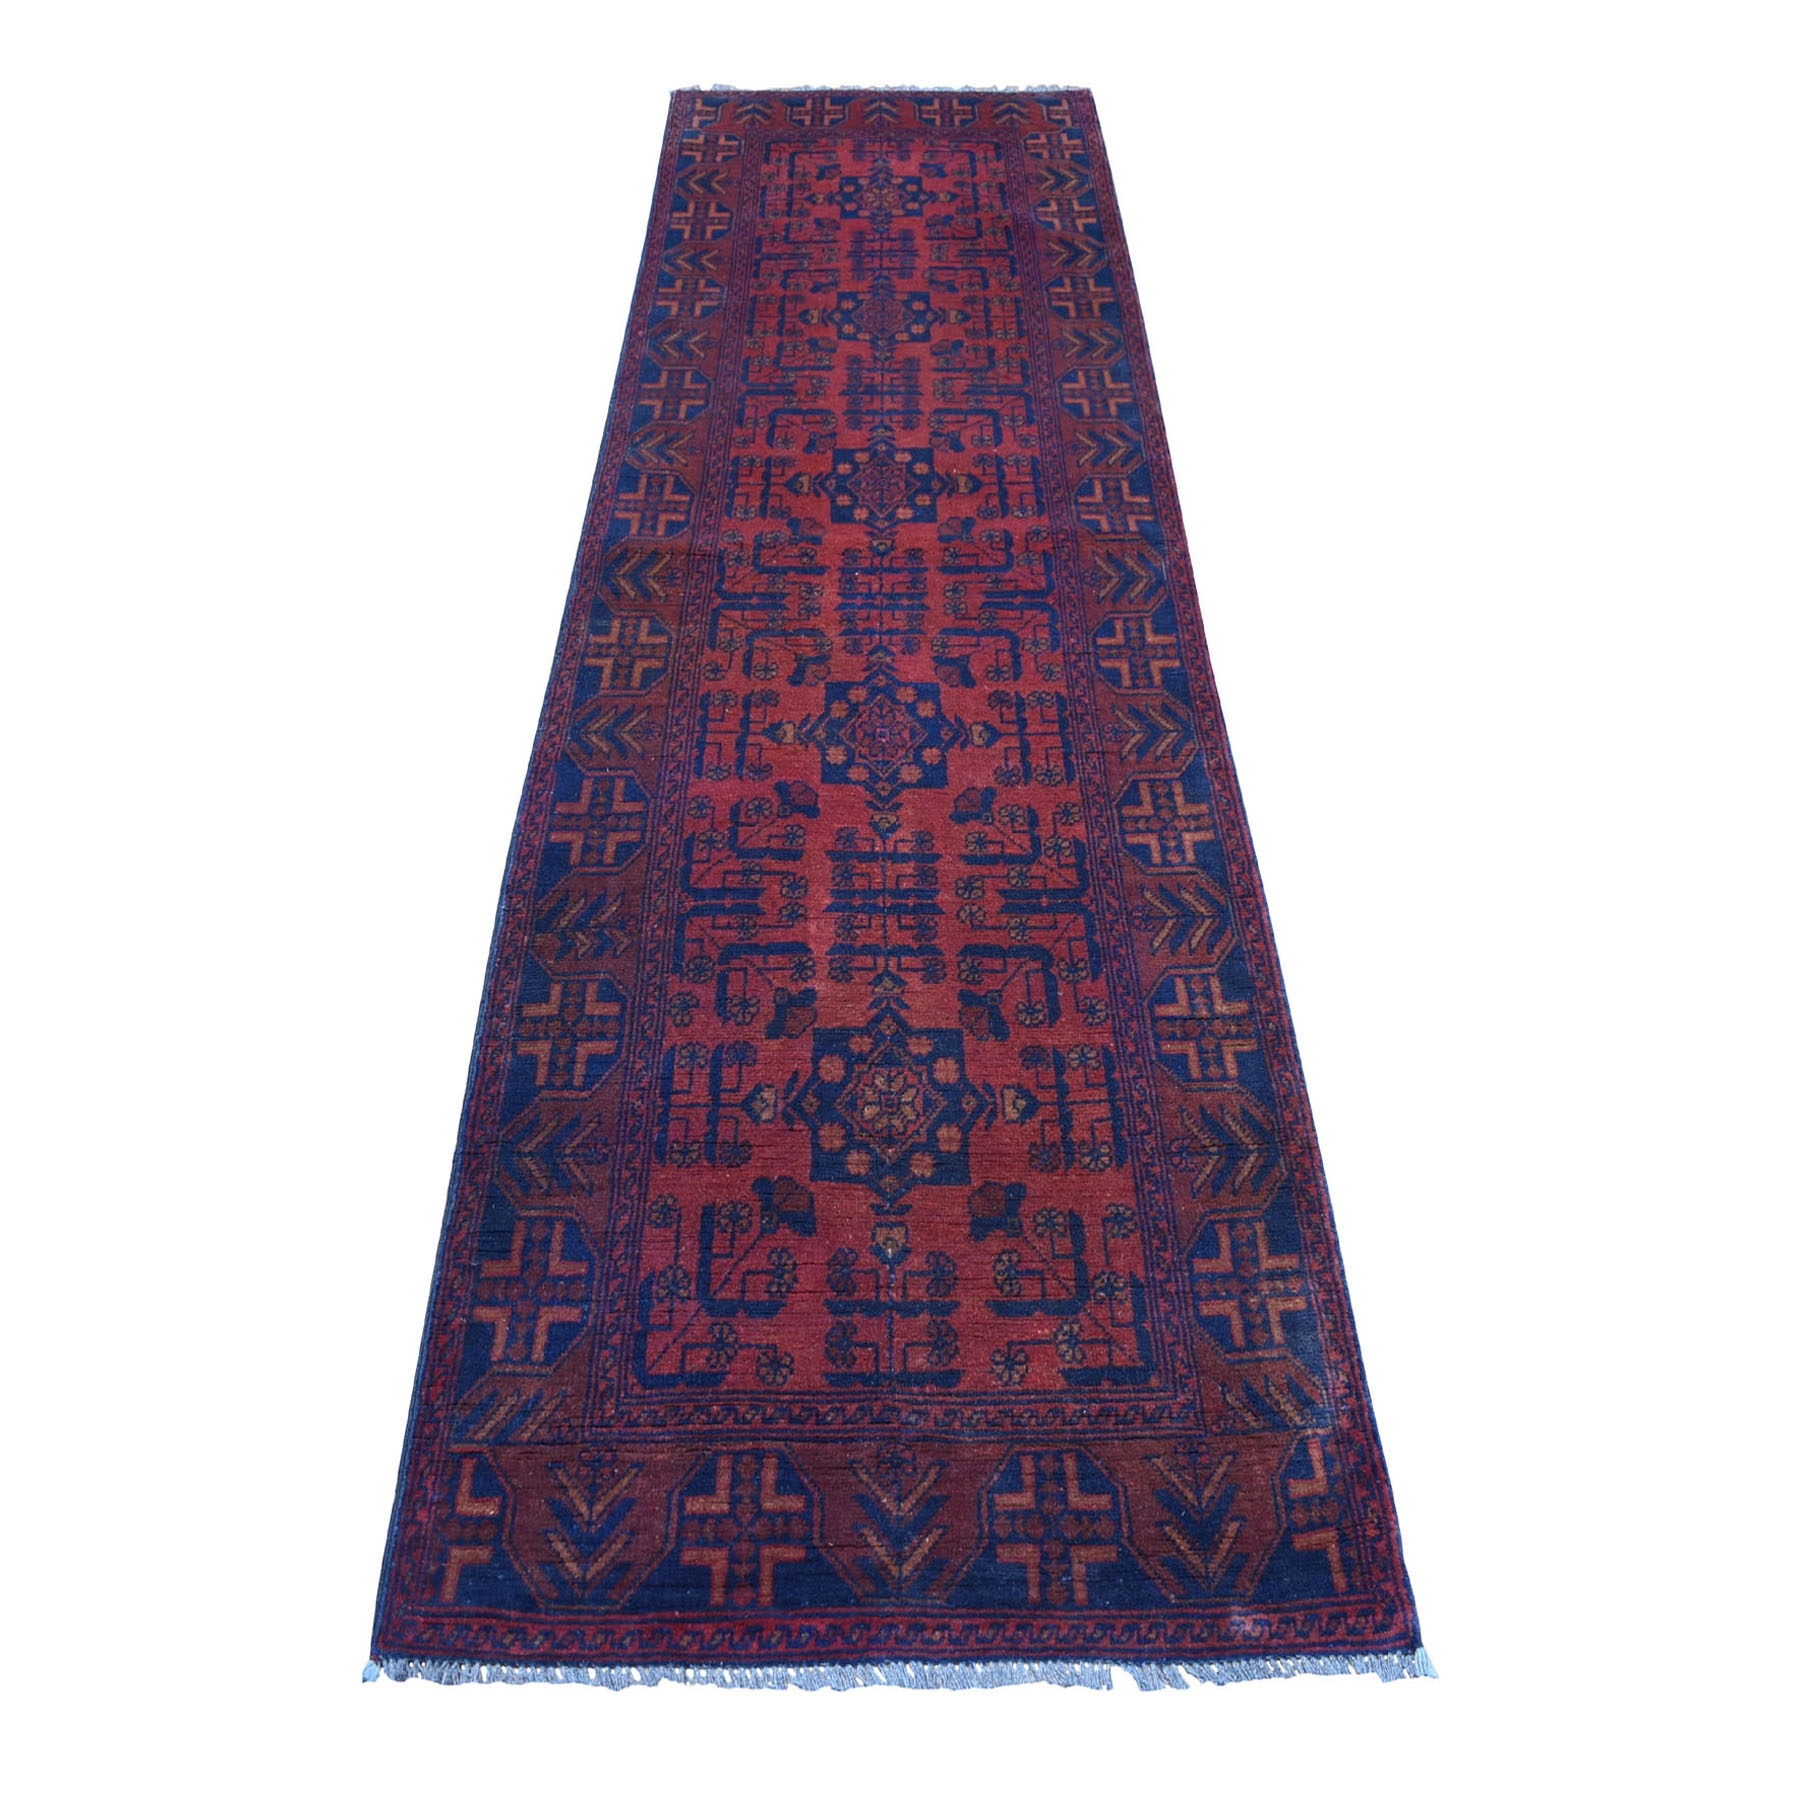 "2'9""x9'3"" Deep and Saturated Red Geometric Afghan Andkhoy Runner Pure Wool Hand Woven Oriental Rug"